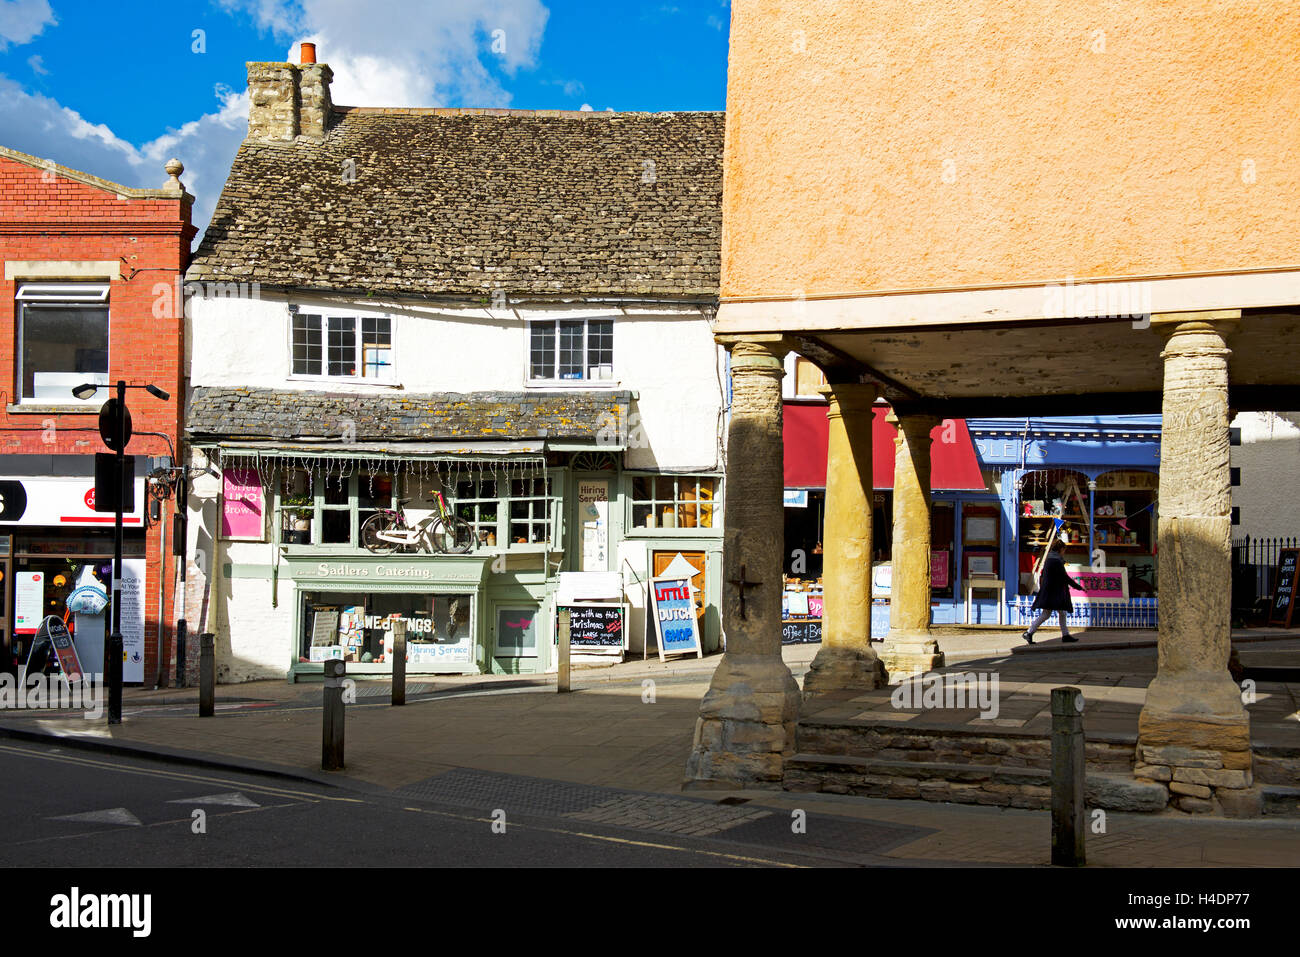 The town square in Faringdon, Oxfordshire, England UK Stock Photo